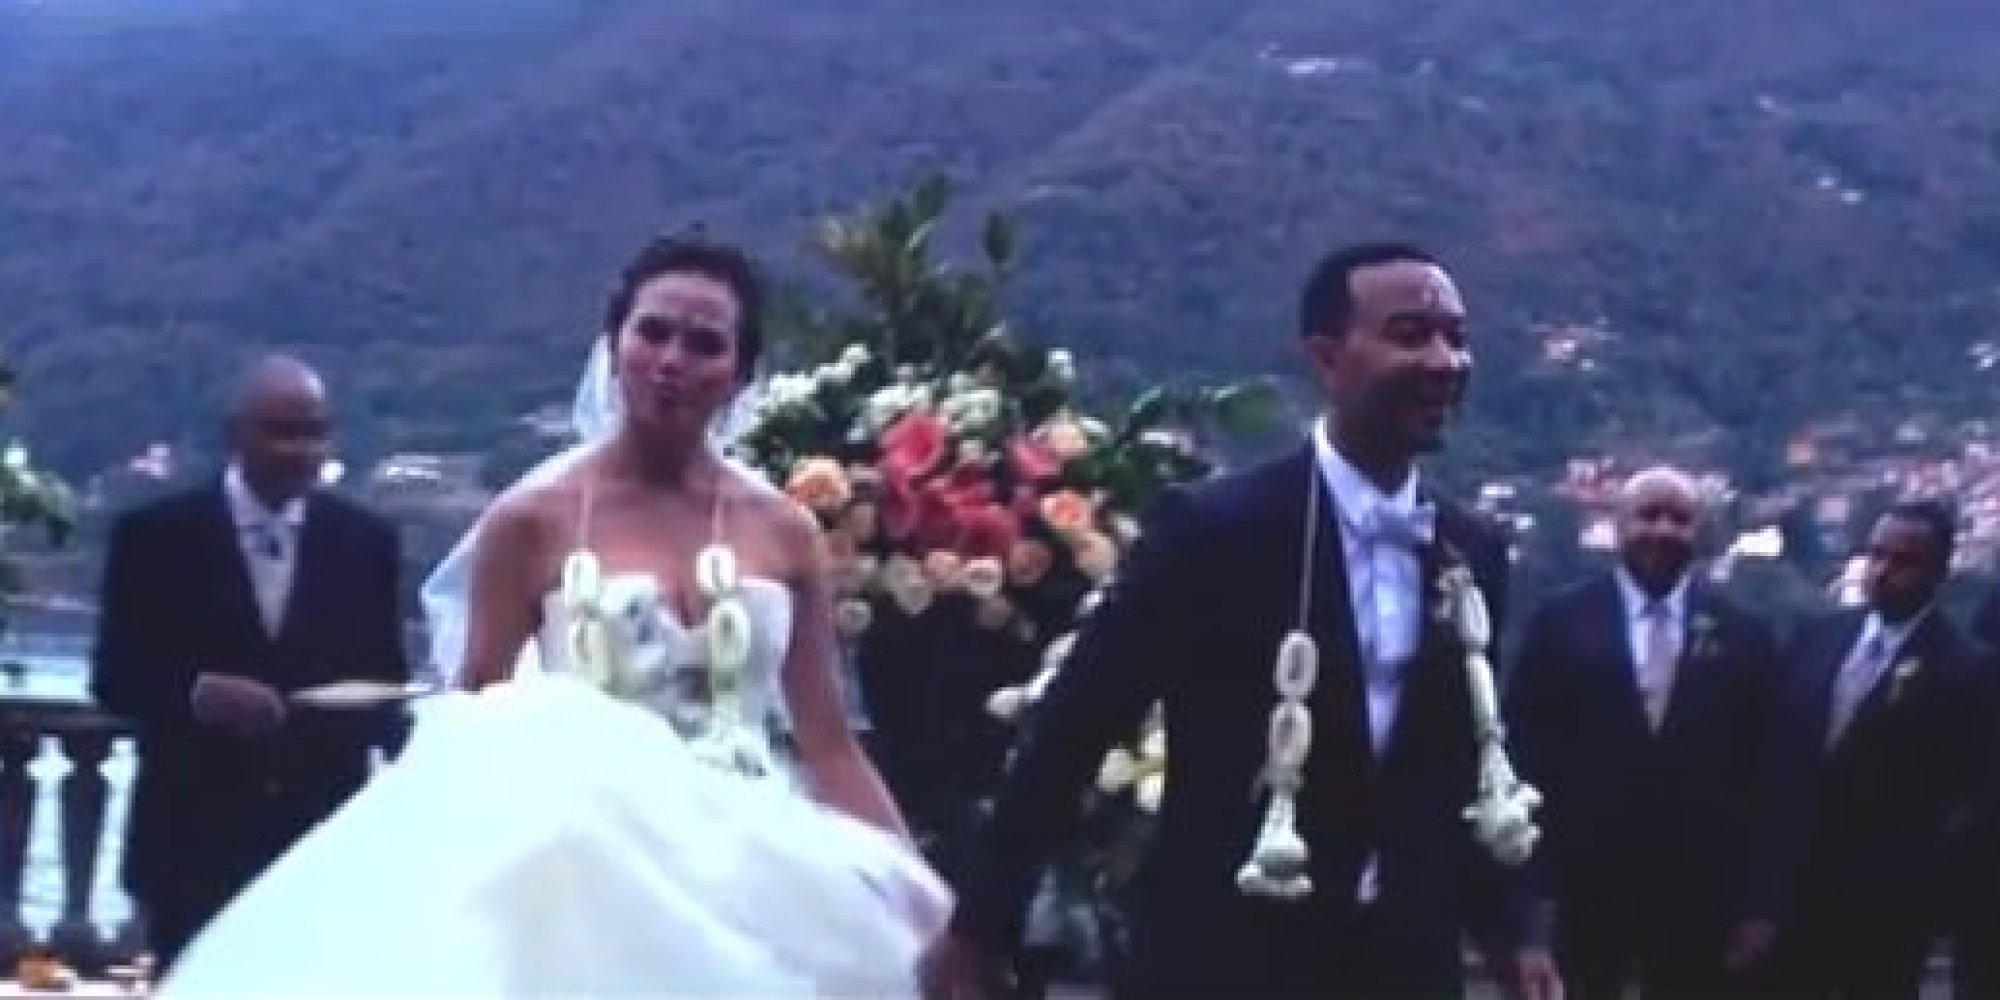 Chrissy Teigen John Legend Wedding Footage Ears At End Of New Music Video Huffpost